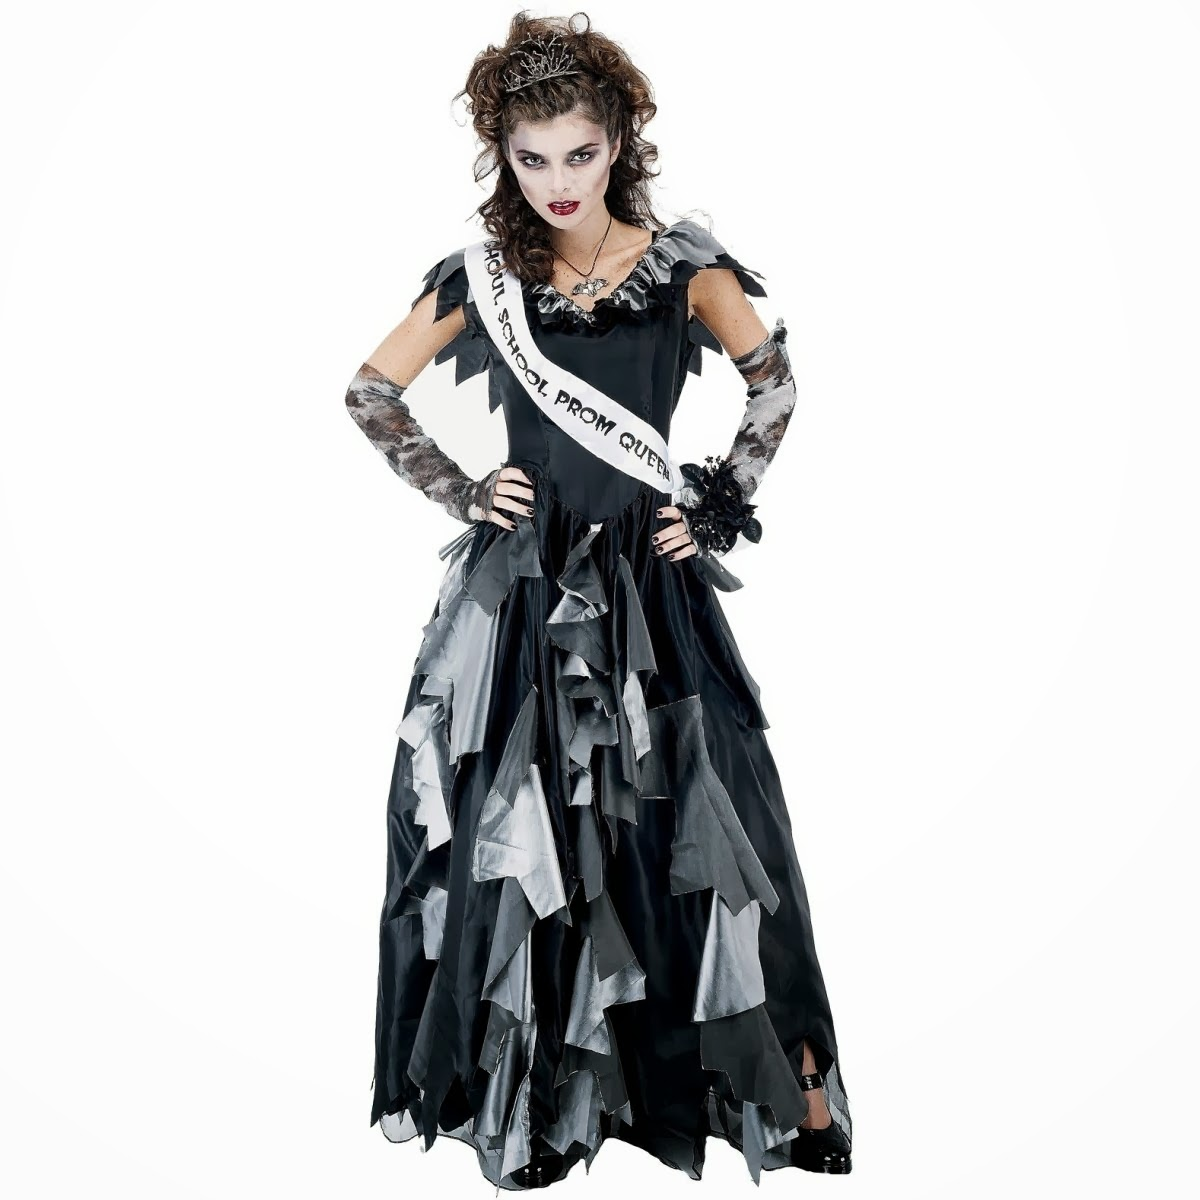 Hd Wallpapers Blog: Halloween Costumes For Women